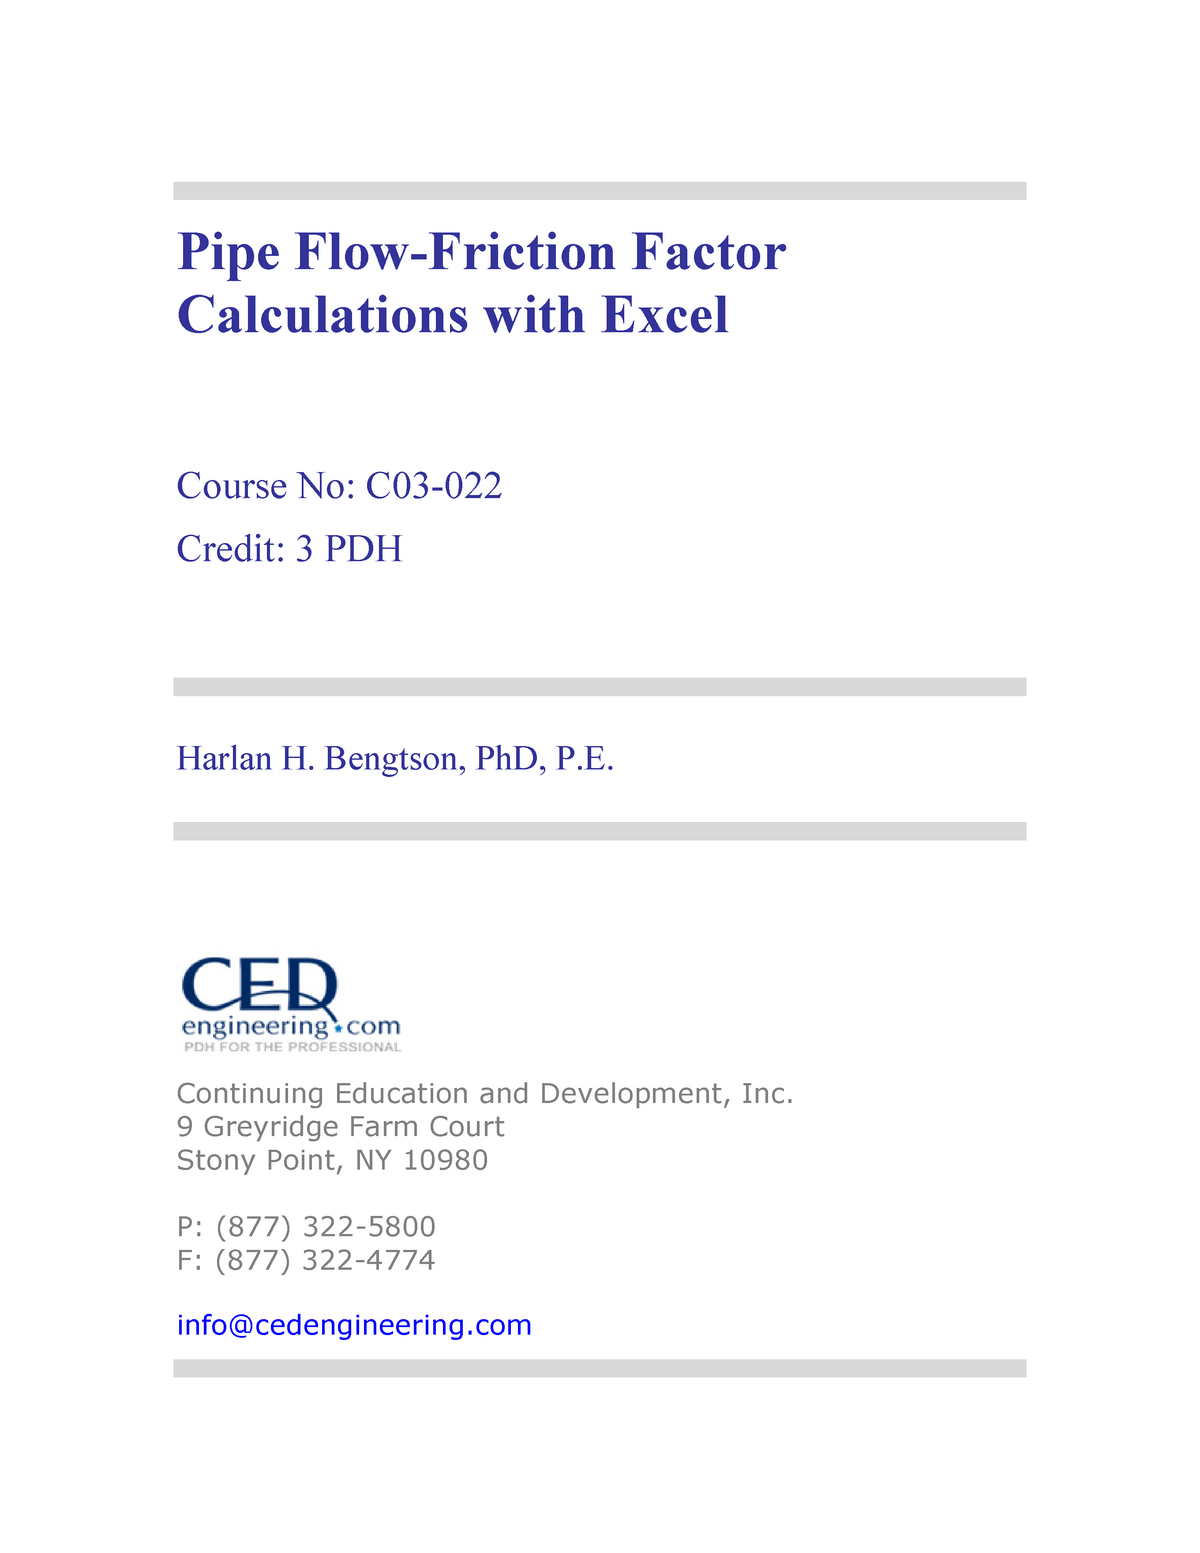 Pipe Flow-Friction Factor Calculations with Excel - 4020